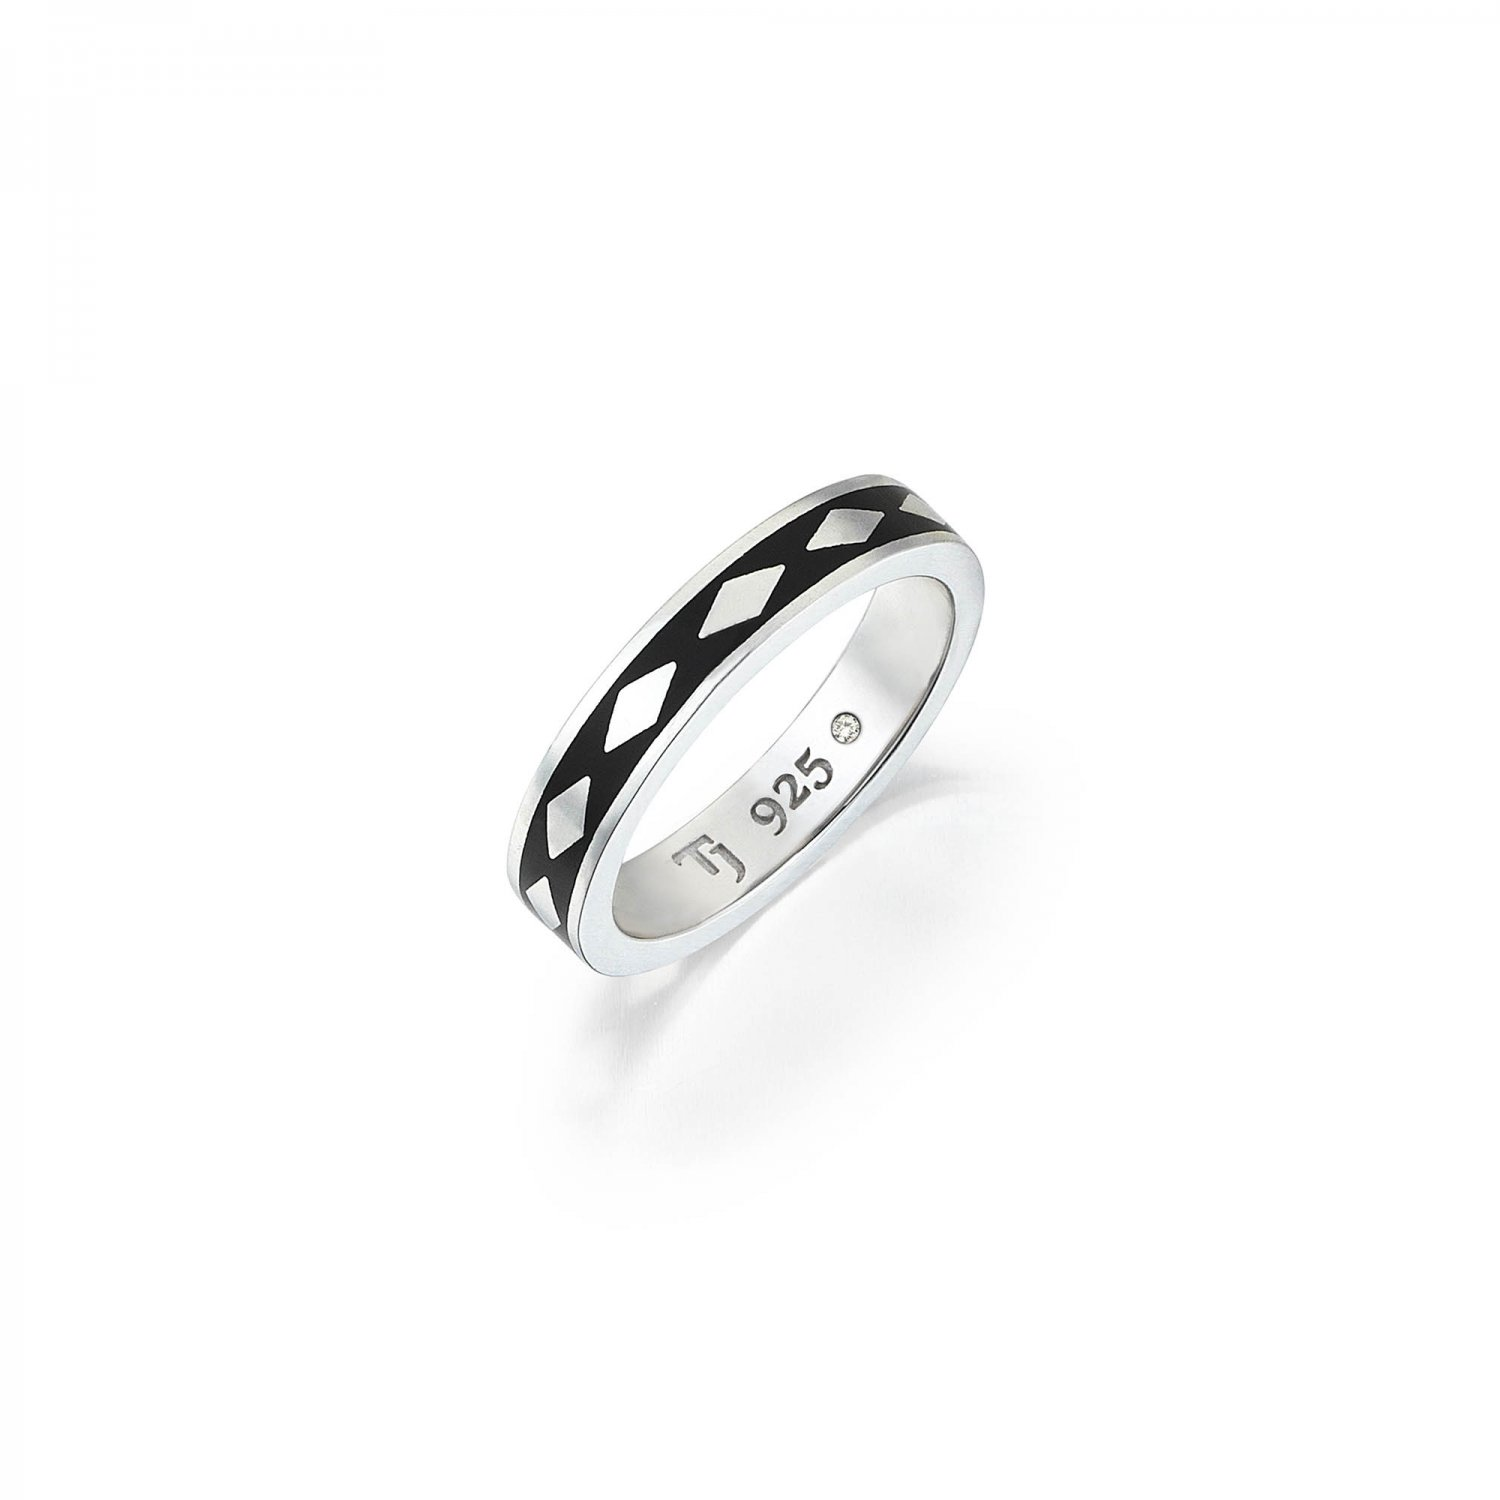 Cubic Snake Band in Silver - 5,30mm - BLACK